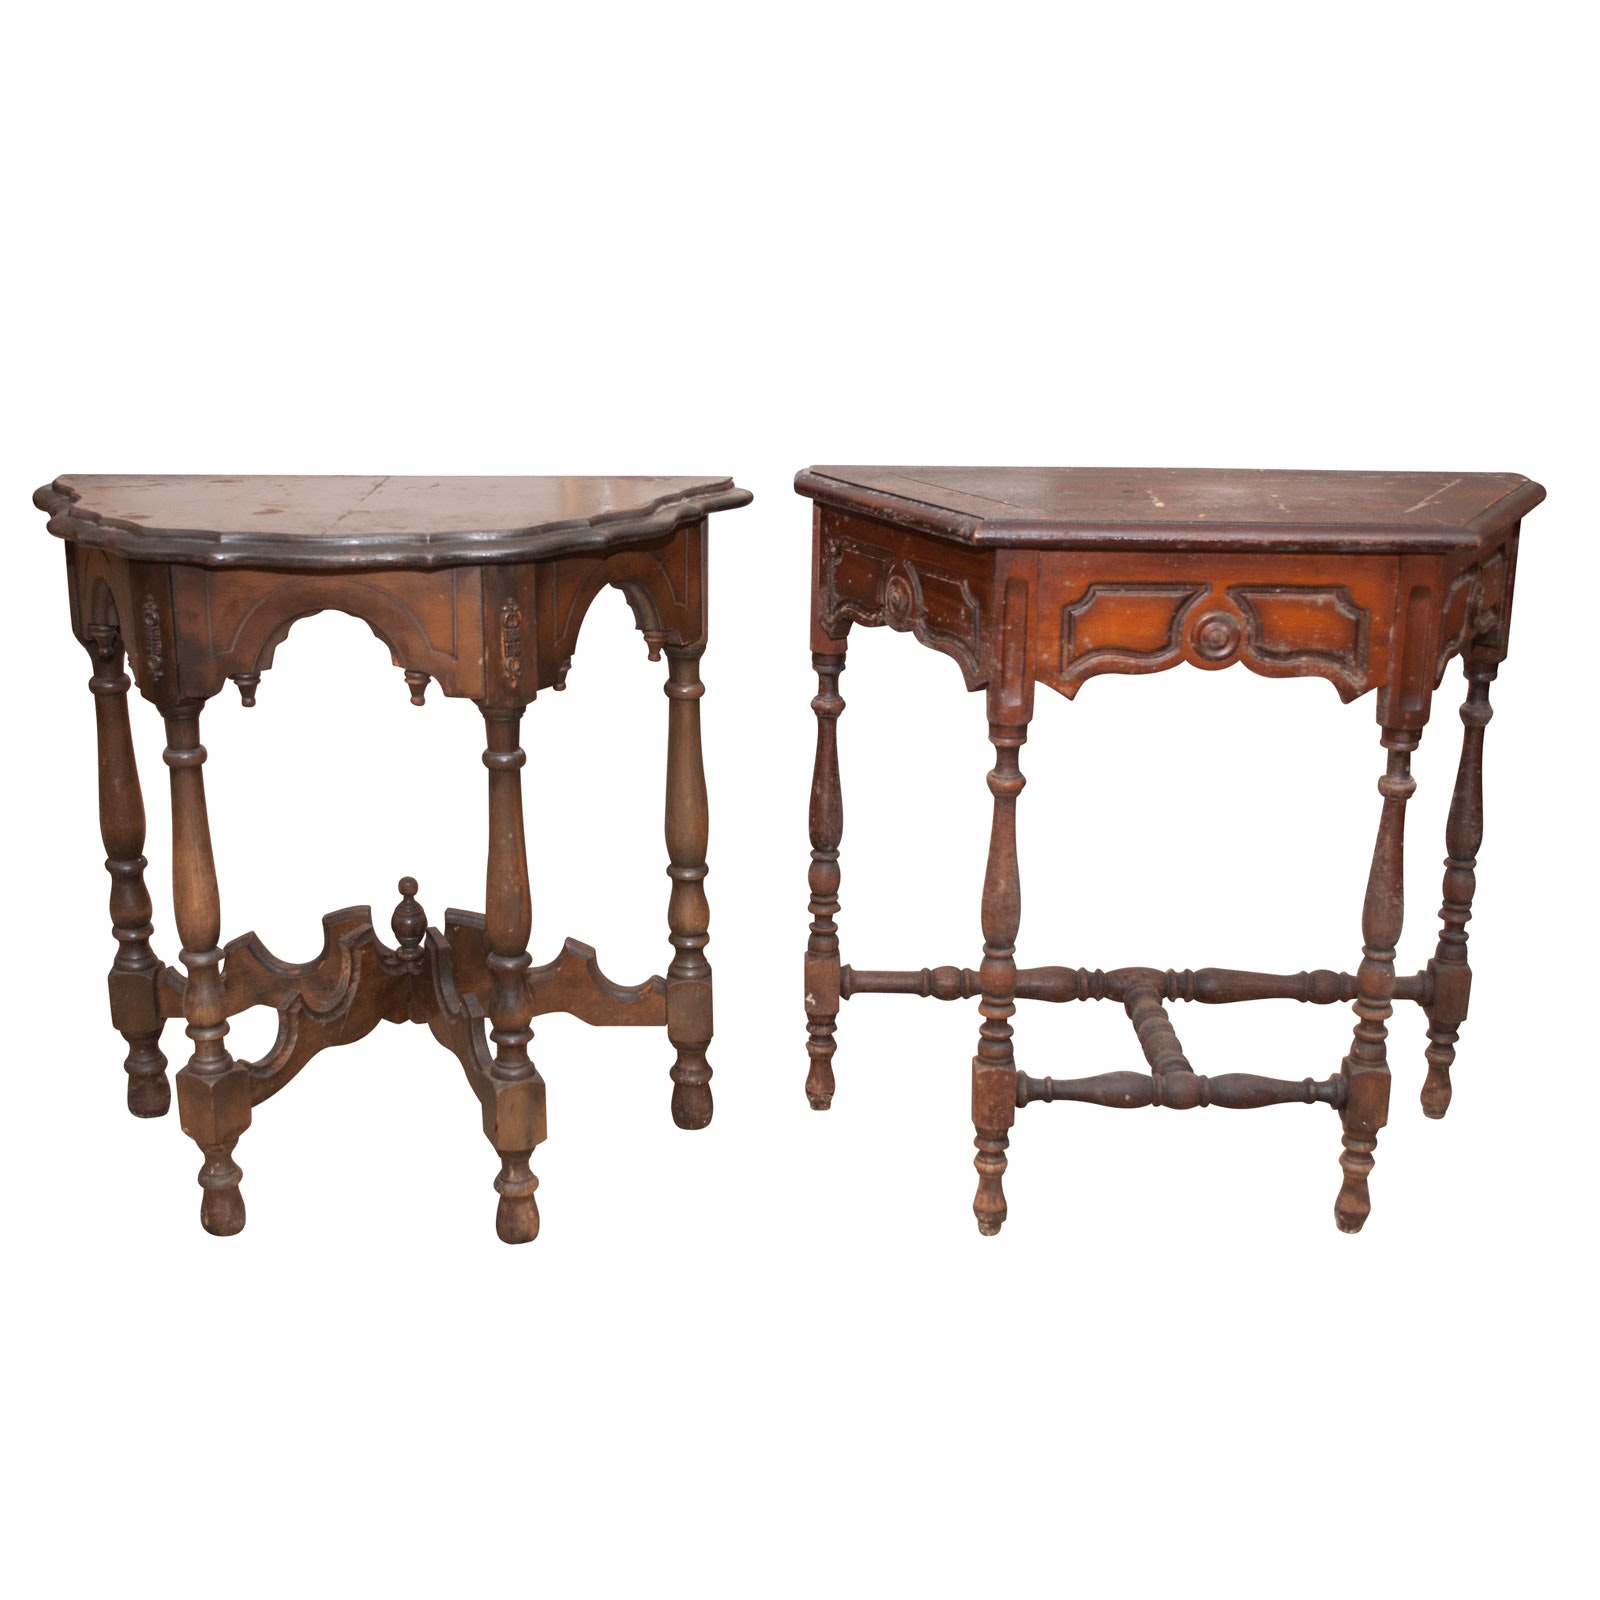 Two Rococo Revival Style Walnut Half Tables, Early 20th Century